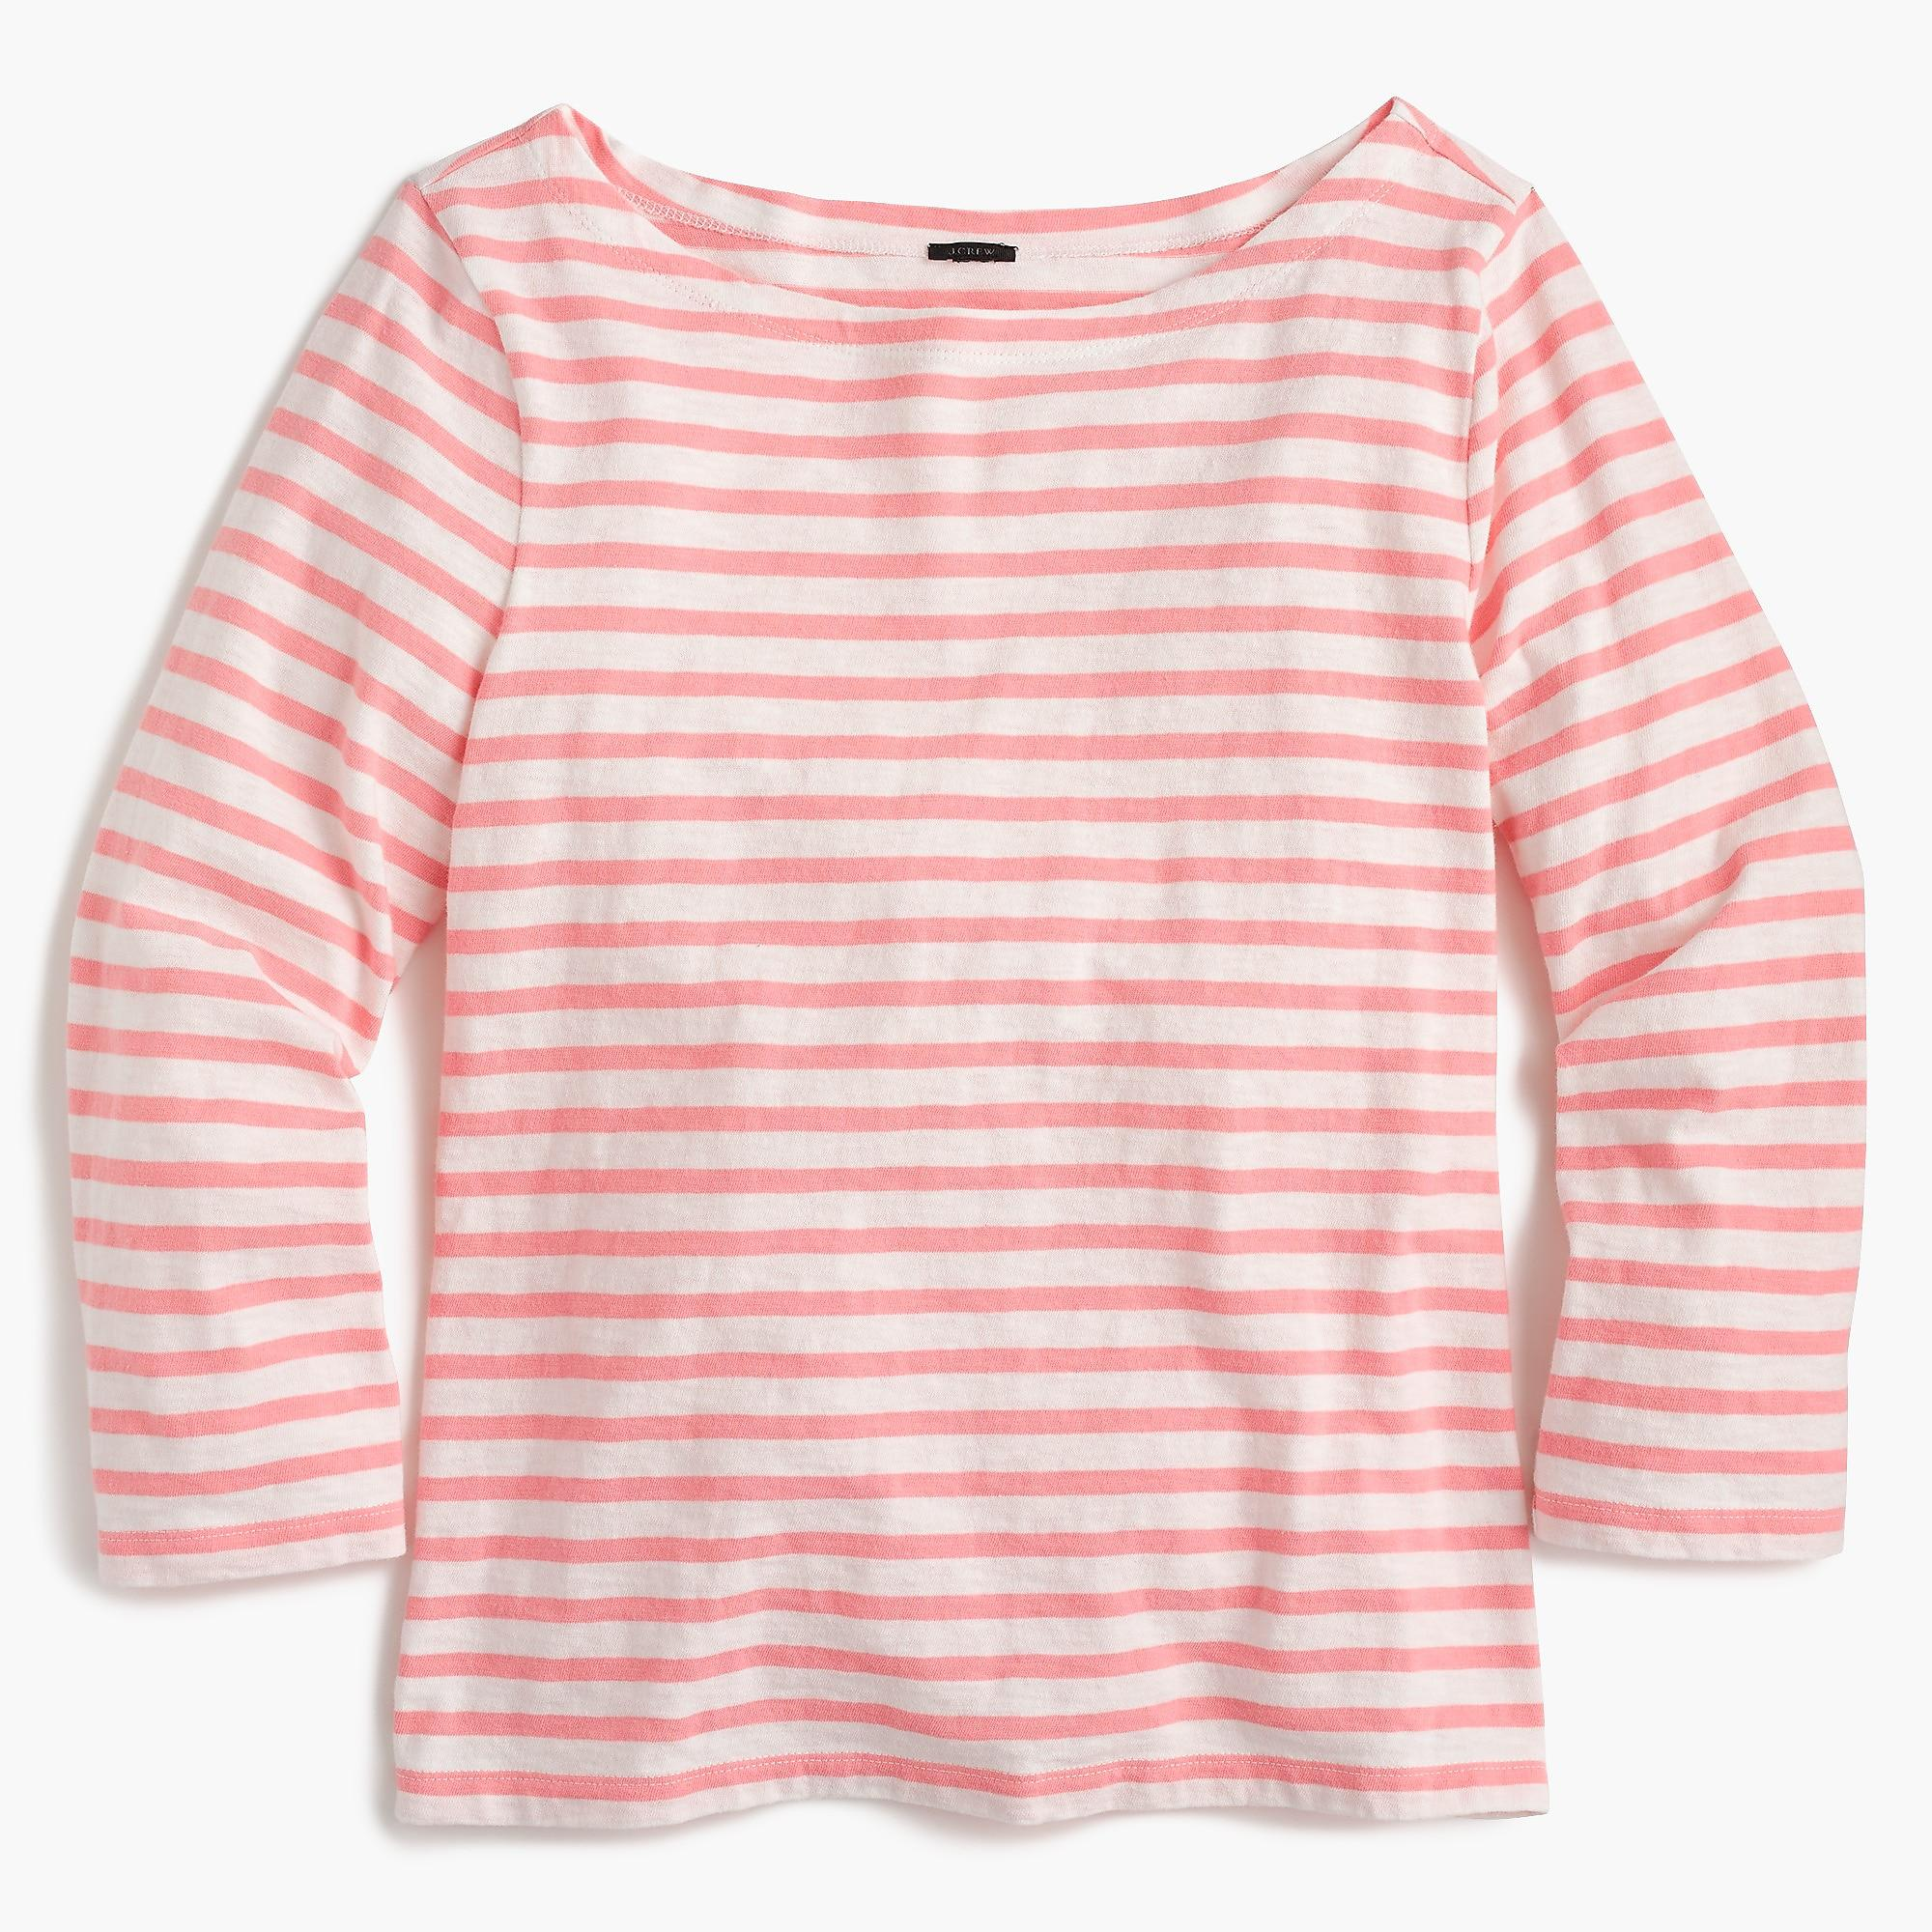 abfbfcdf3b J.Crew - Pink Striped Boatneck T-shirt - Lyst. View fullscreen